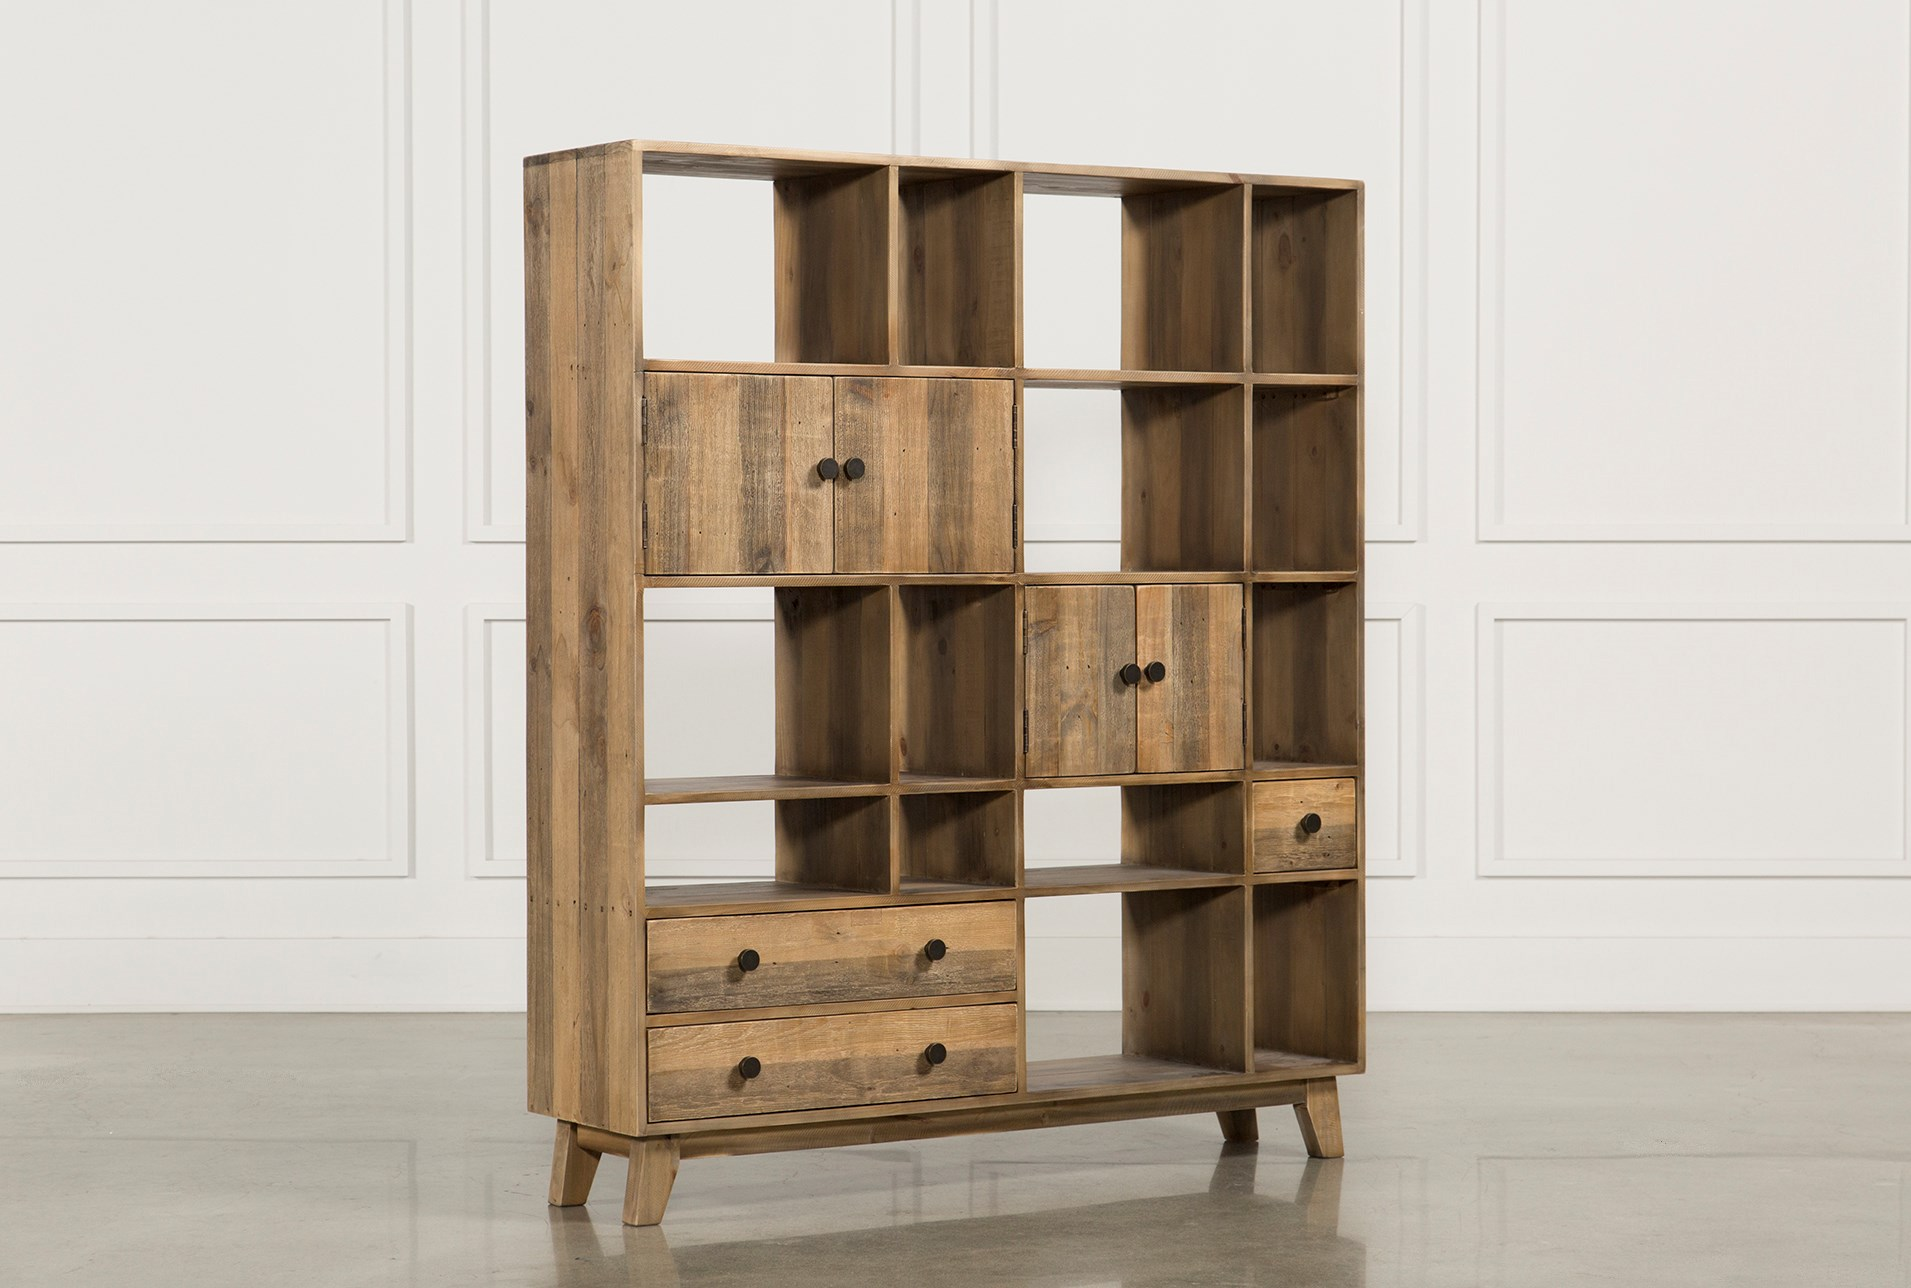 Lathom Bookcase Qty 1 Has Been Successfully Added To Your Cart